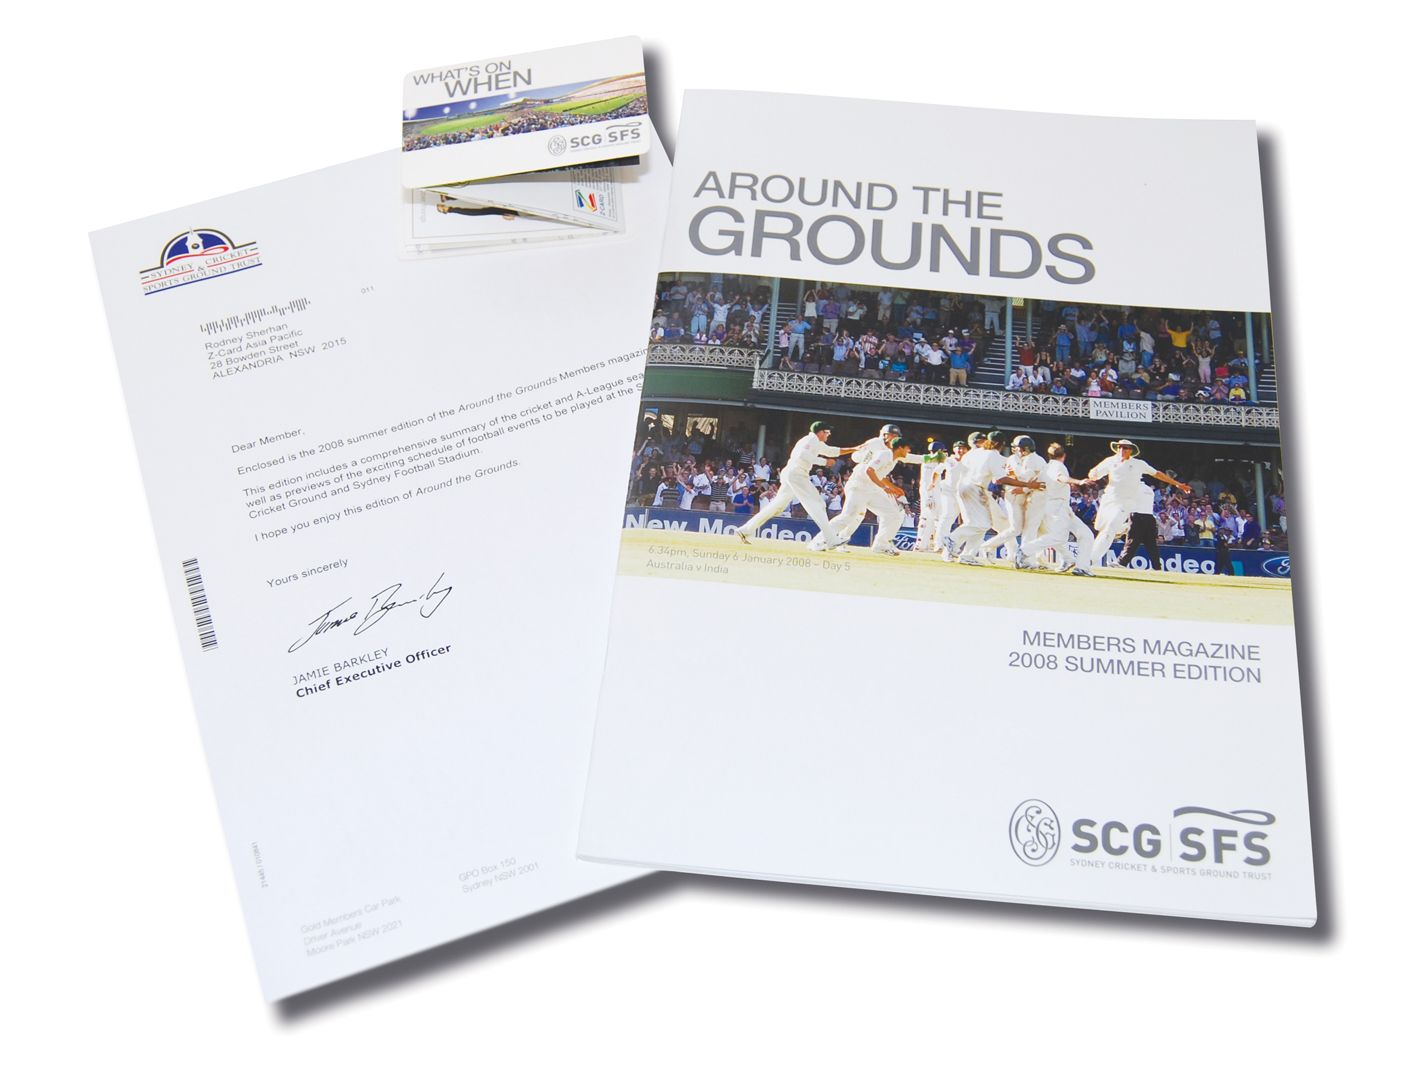 SCG Z-CARD with Membership Magazine and A4 Letter   Z-CARD